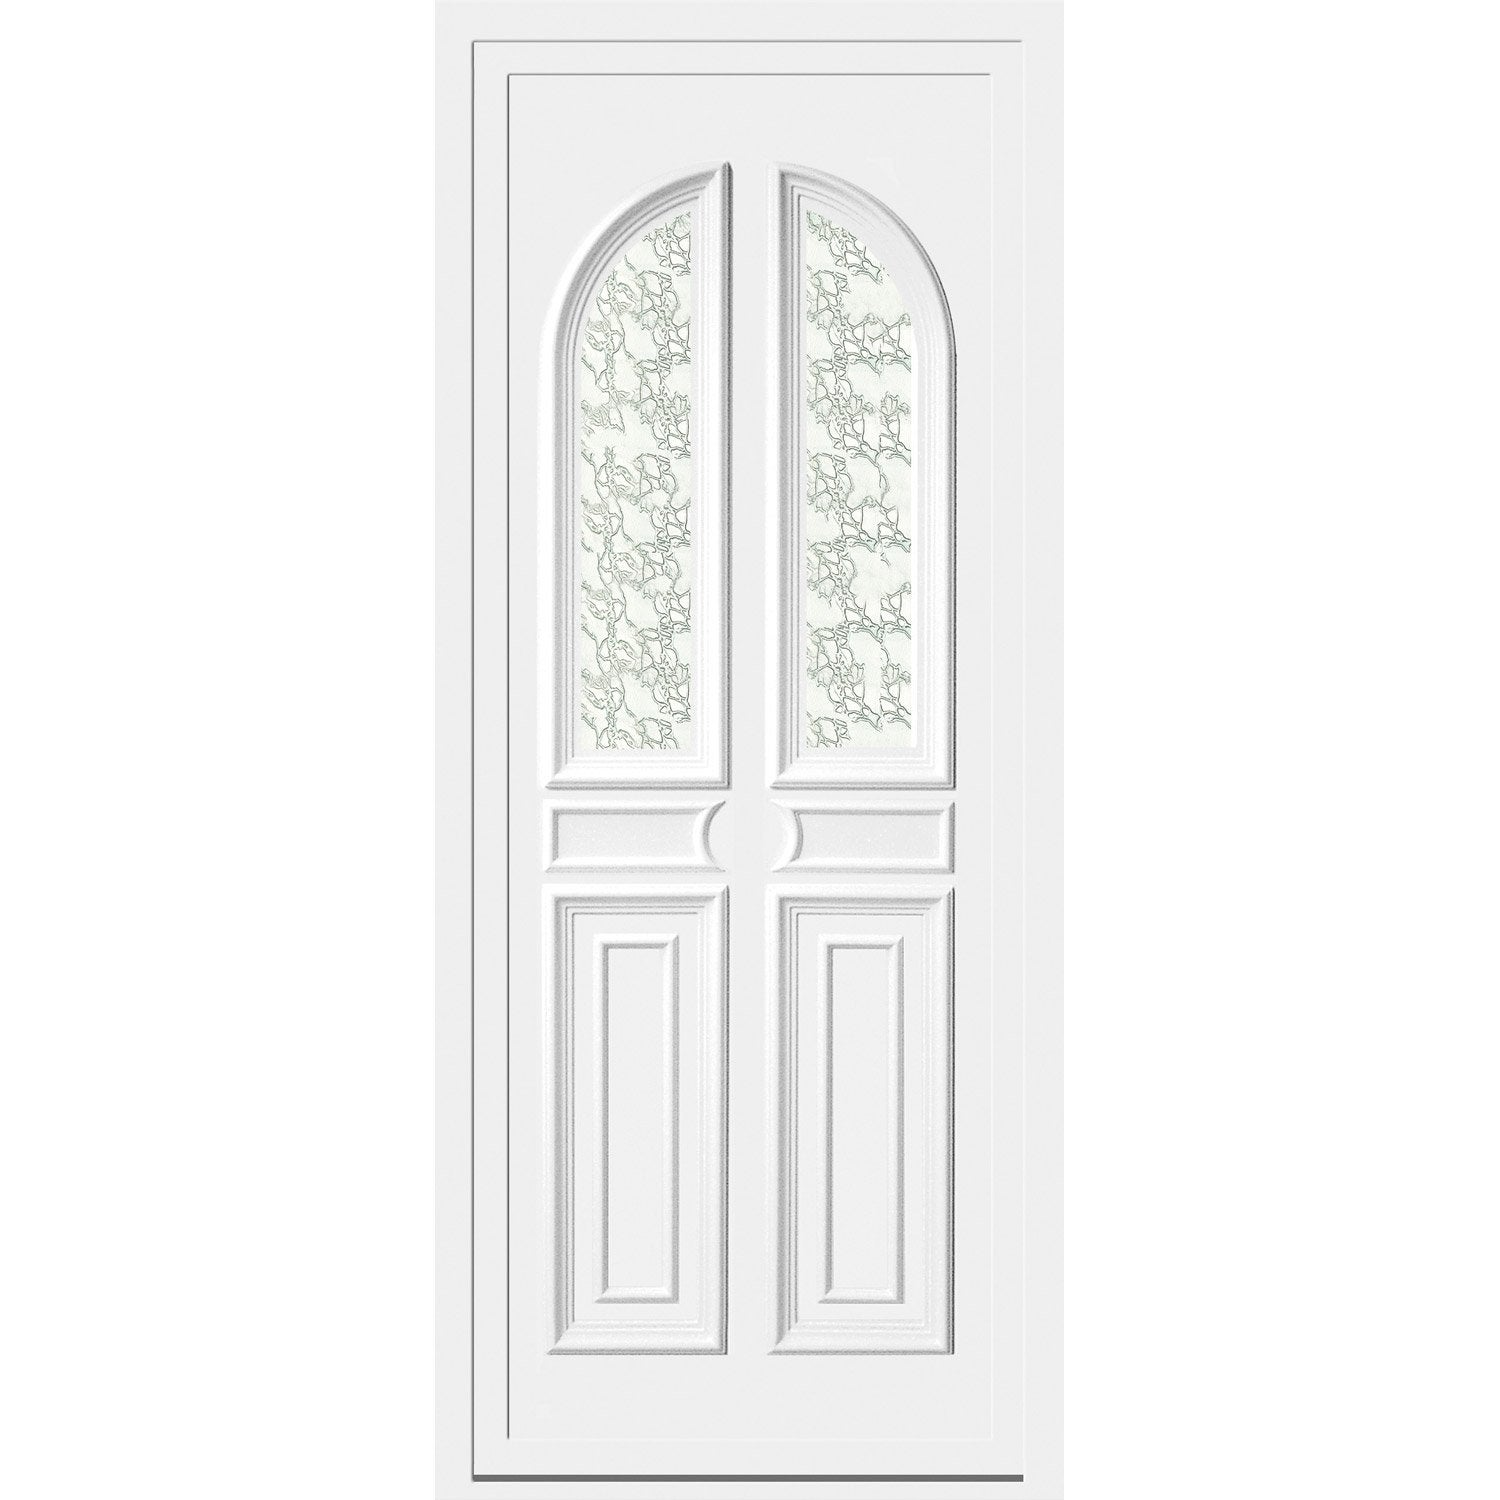 Porte sur mesure leroy merlin maison design - Canvas pvc leroy merlin ...